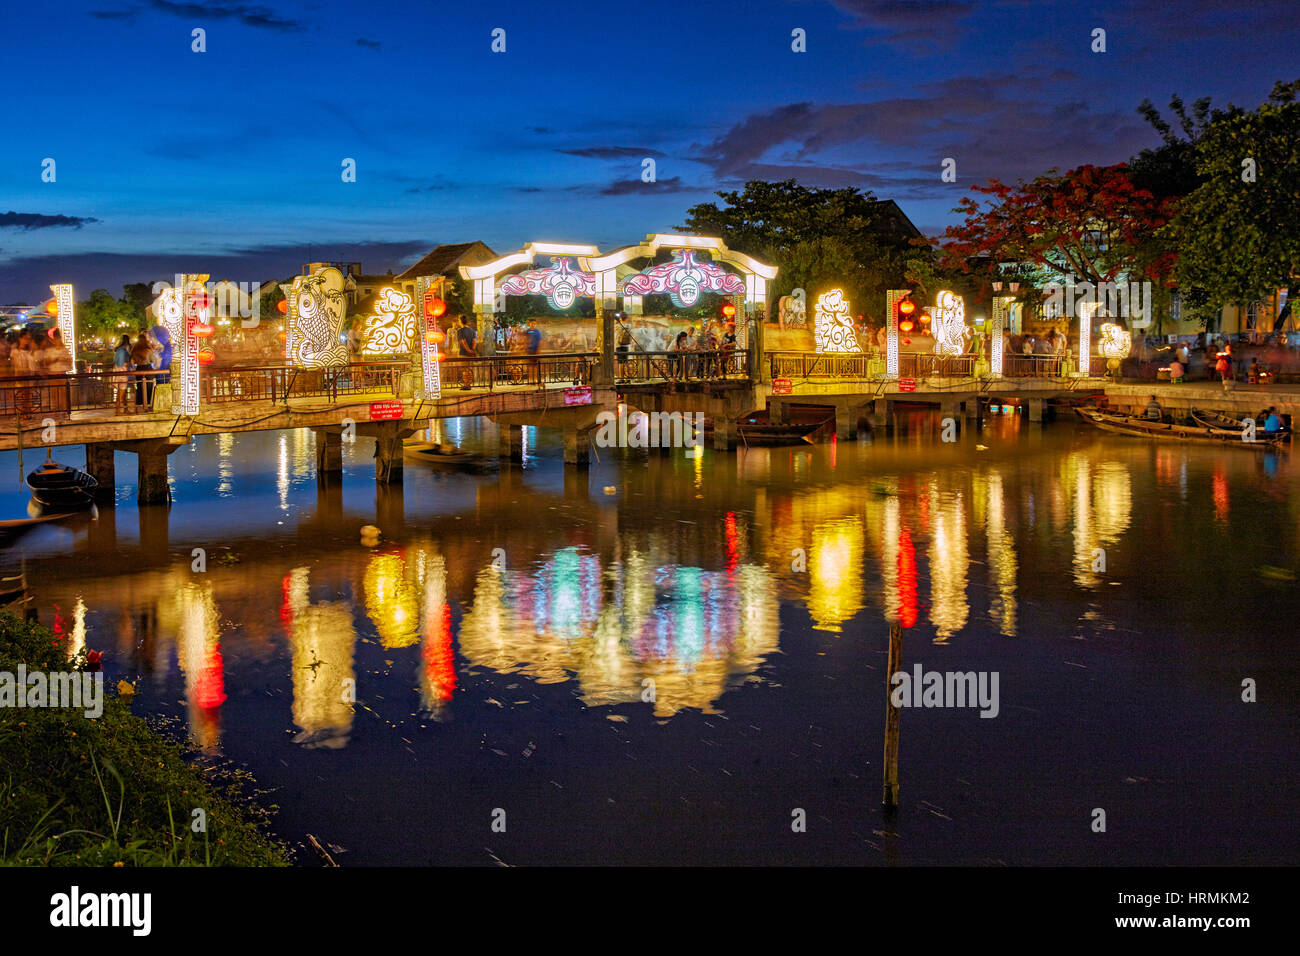 Cau An Hoi Bridge illuminated at dusk. Hoi An Ancient Town, Quang Nam Province, Vietnam. - Stock Image